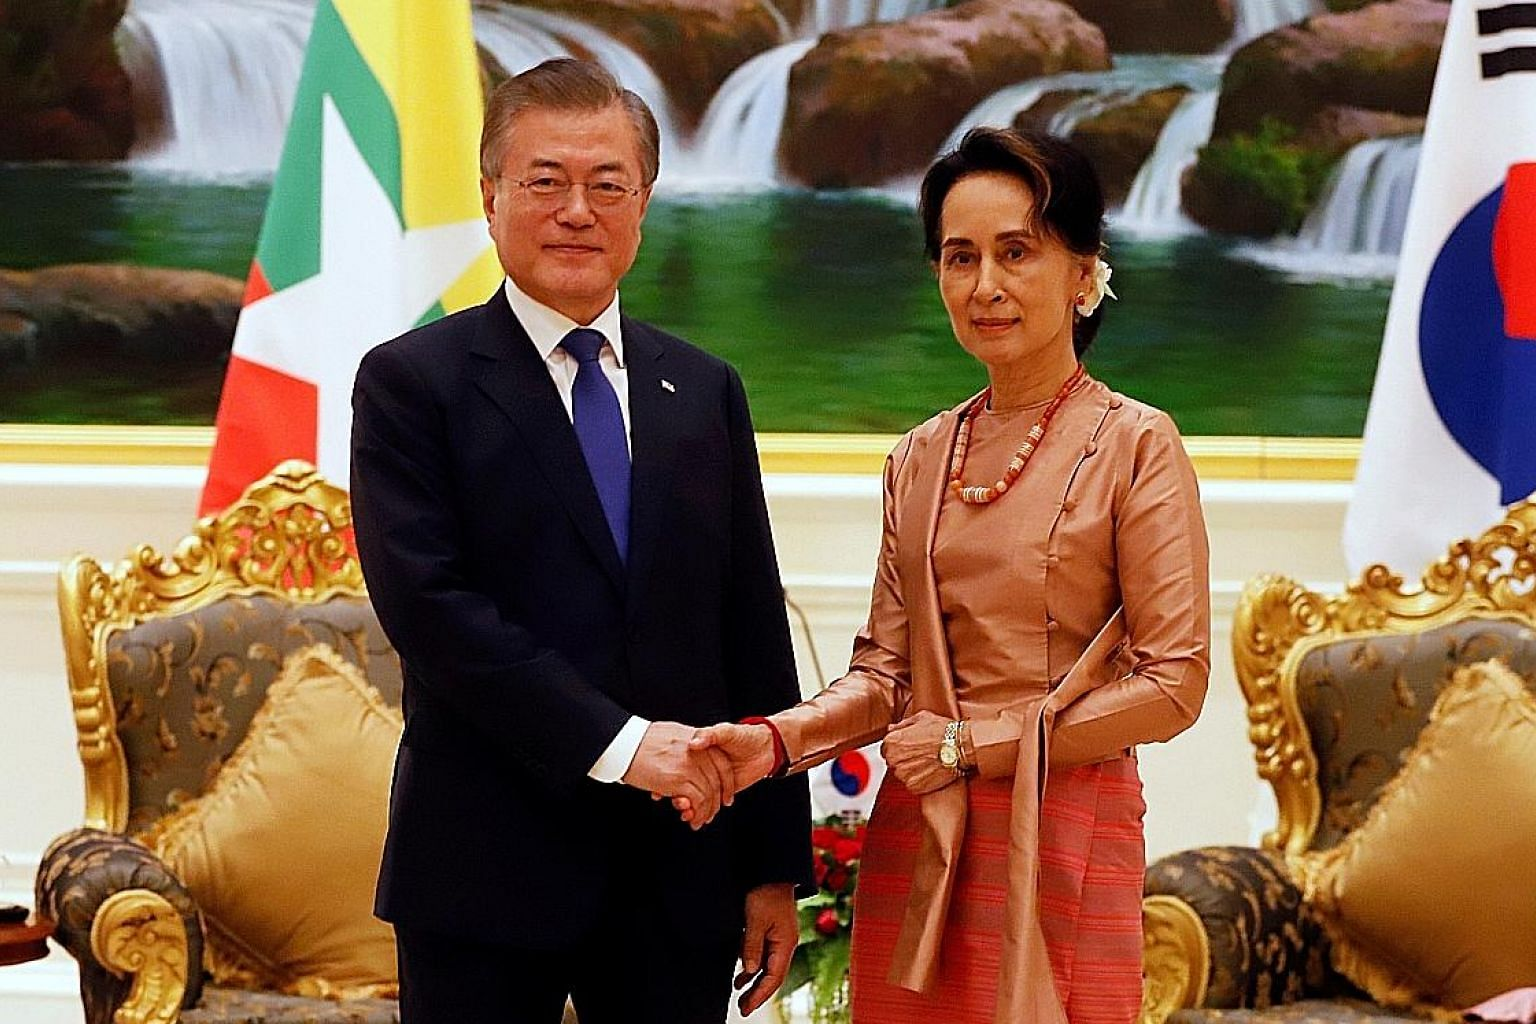 South Korean President Moon Jae-in meeting Myanmar's de facto leader Aung San Suu Kyi at the presidential palace in Naypyitaw yesterday.